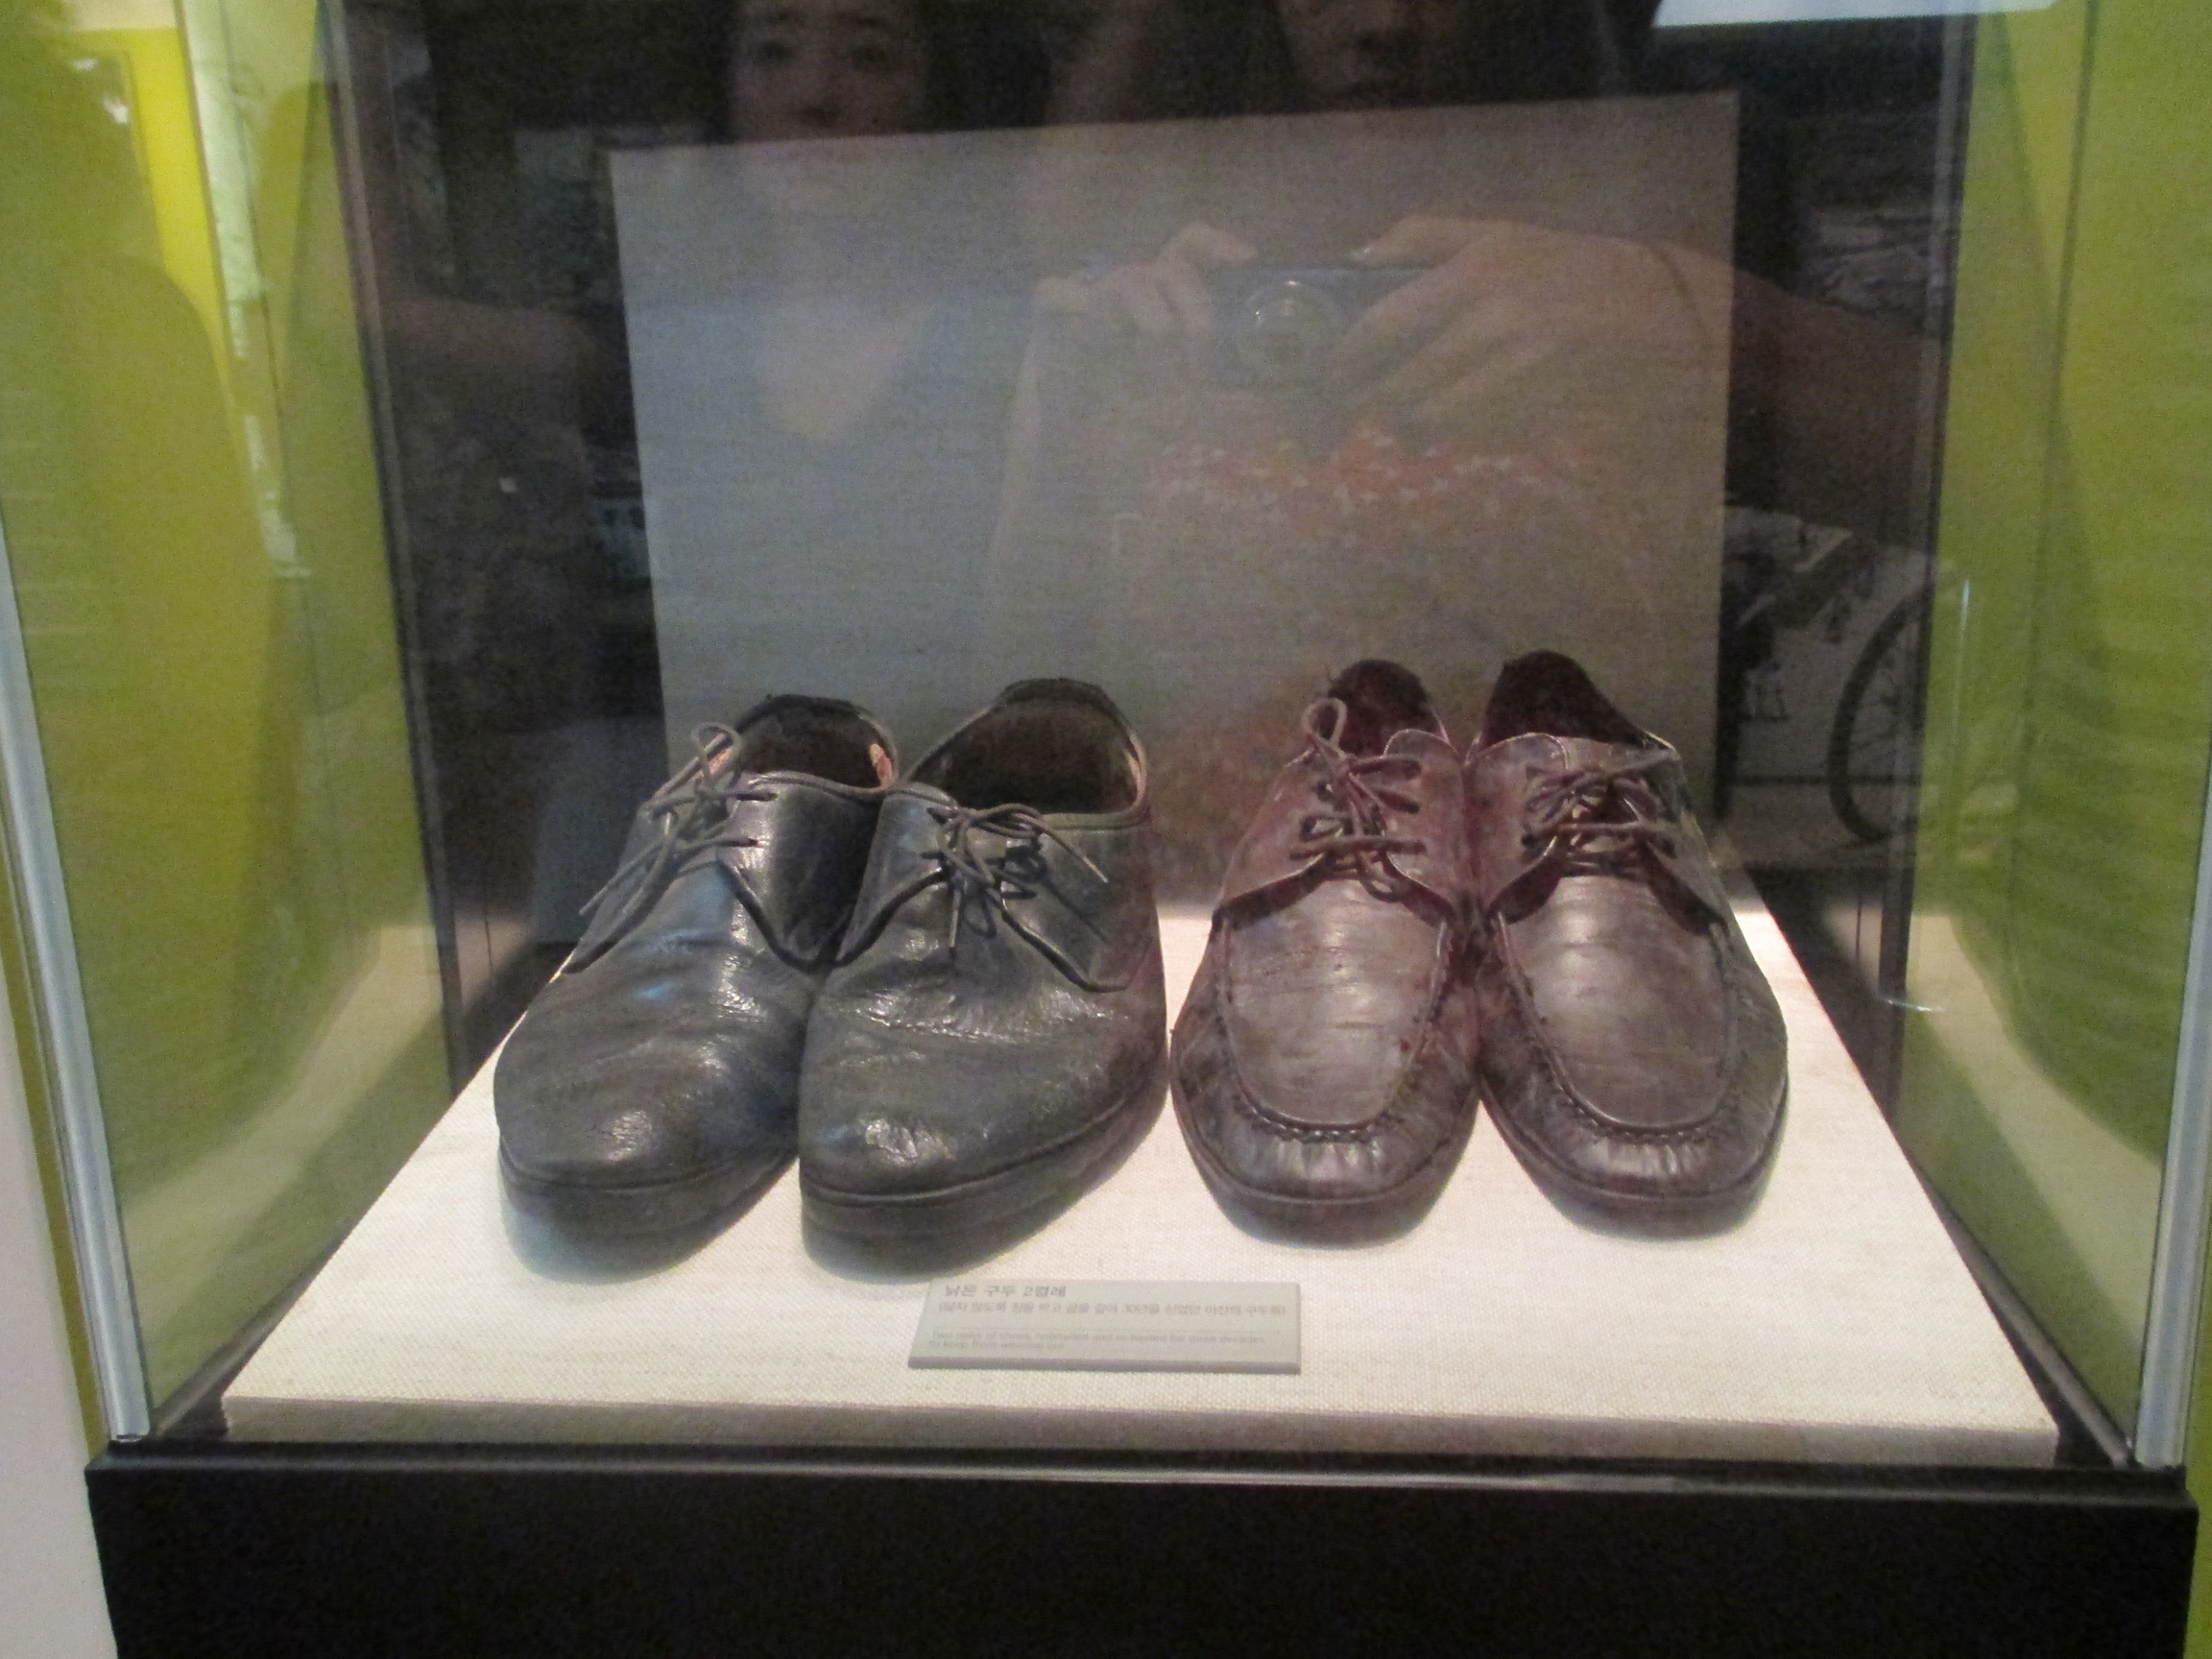 The same shoes that Chung Ju-yung wore for over 30 years